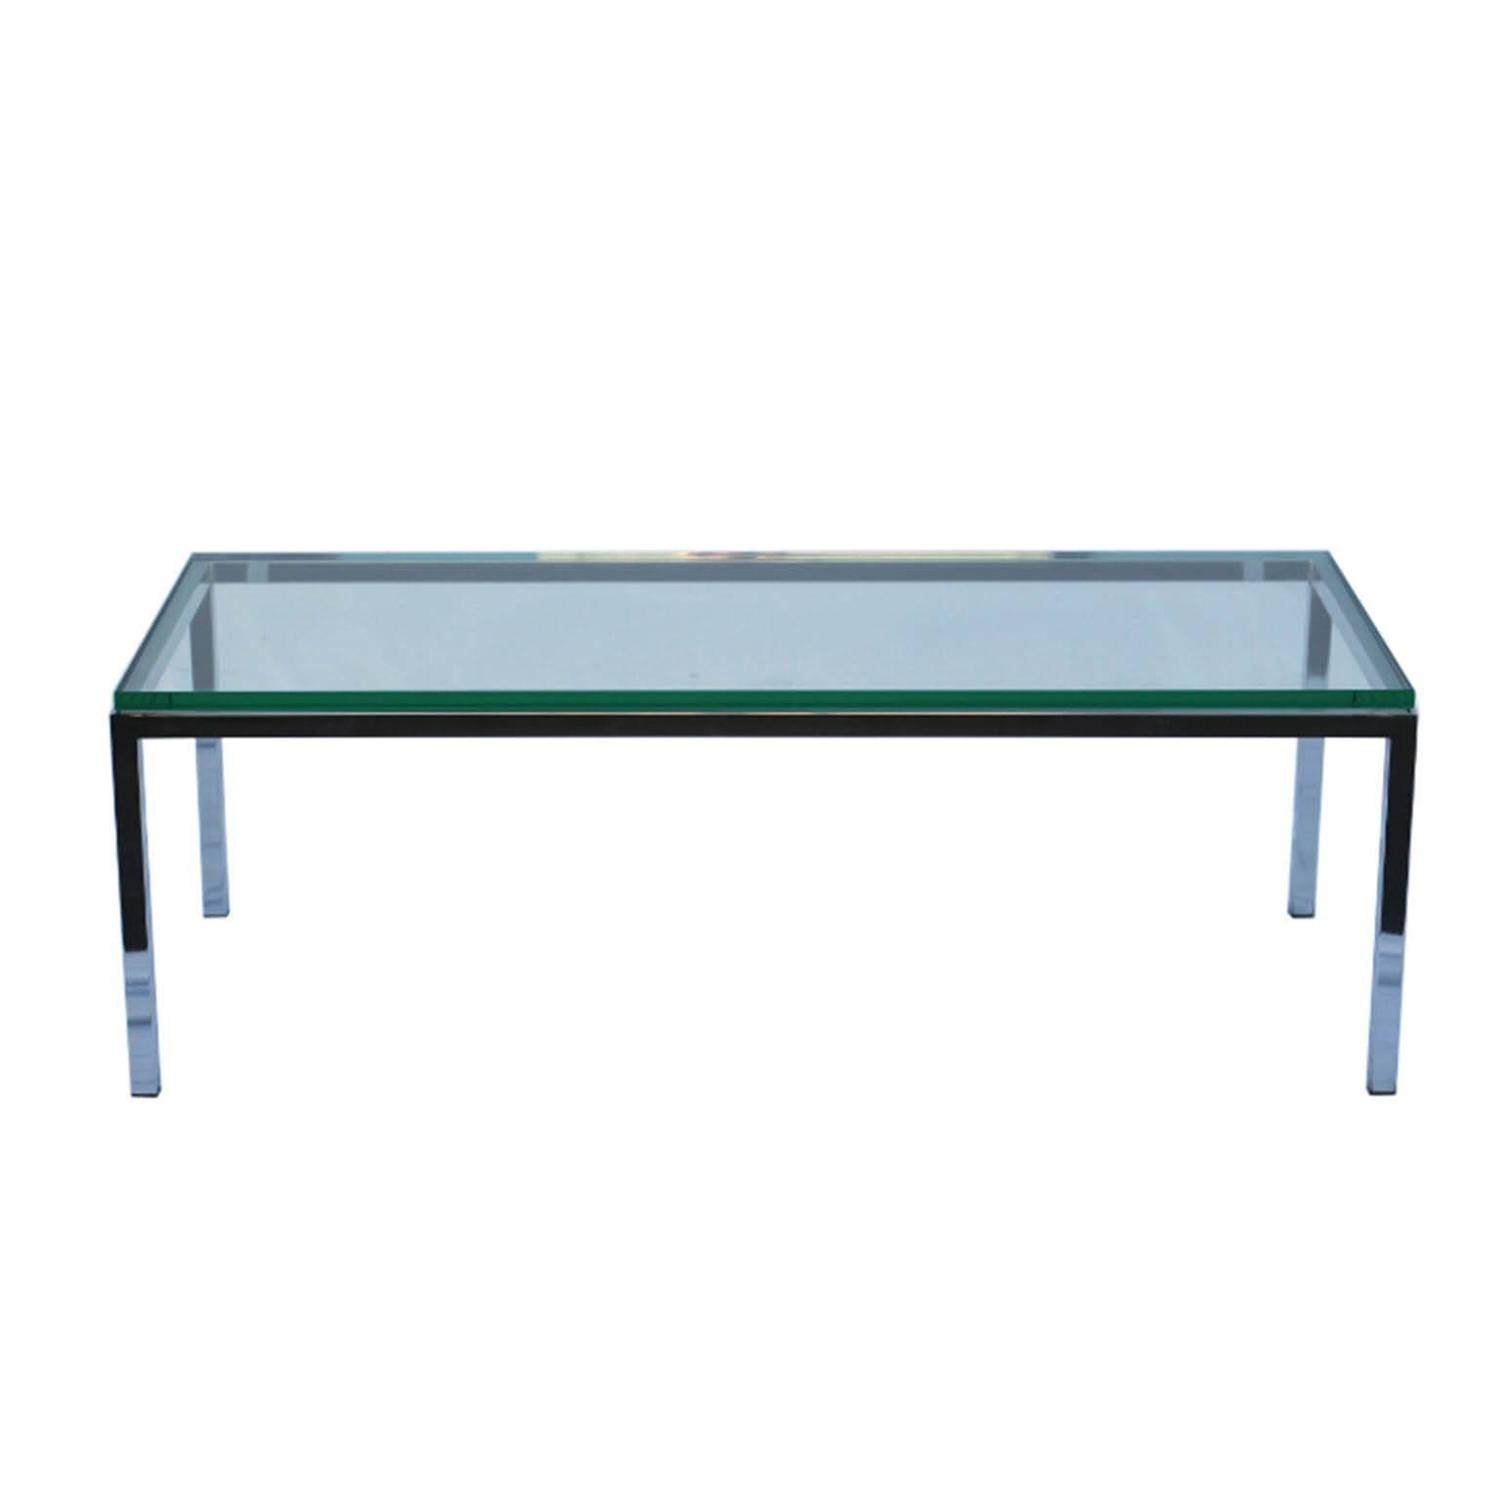 Brueton Stainless Steel And Glass Coffee Table For Sale At 1stdibs